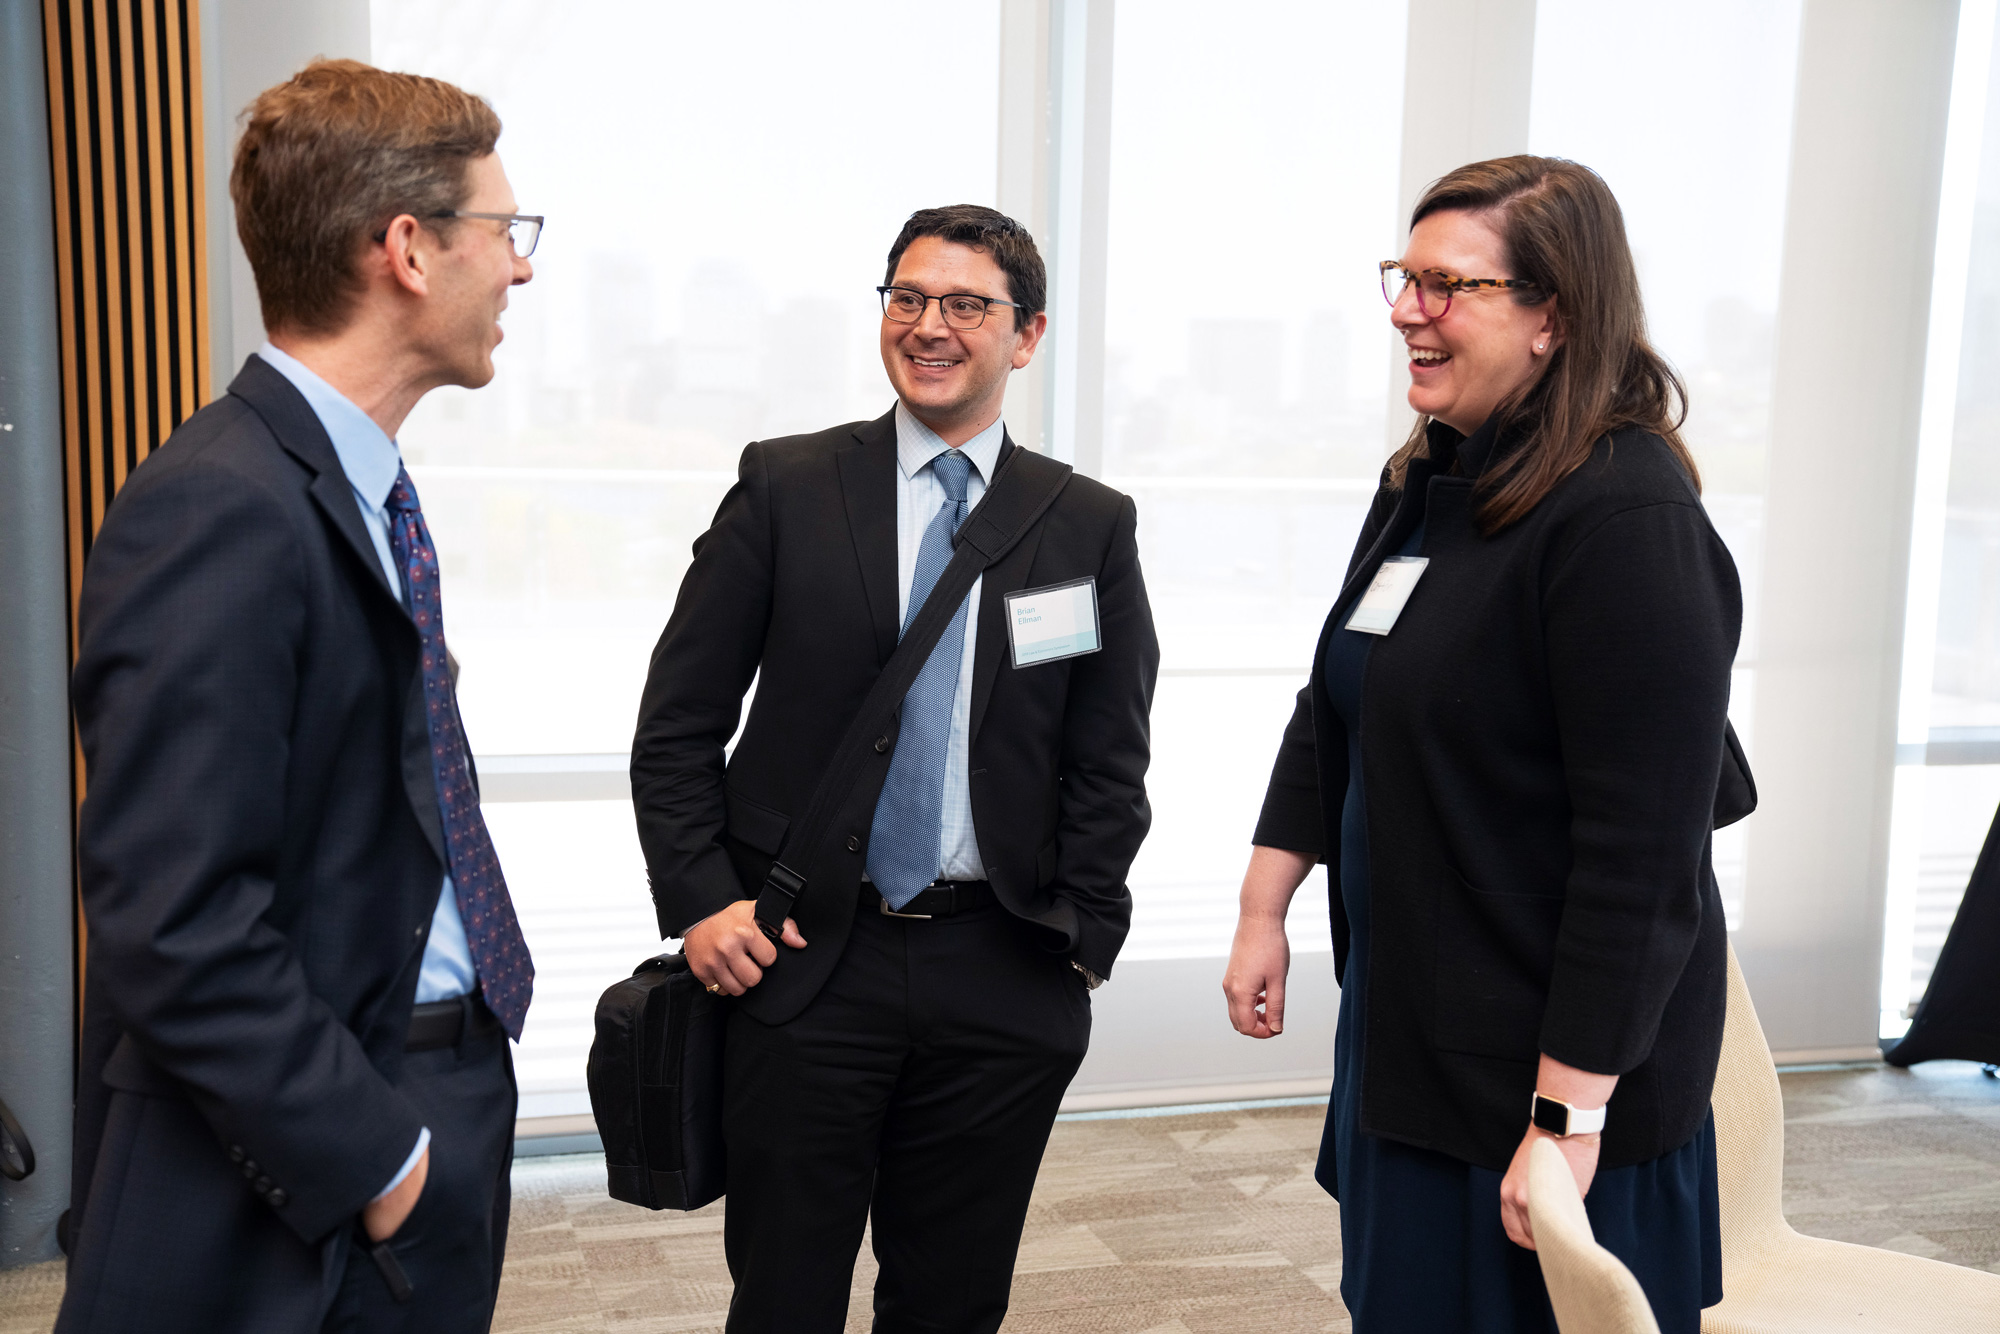 2019 L&ES - Richard Mortimer, Brian Ellman, and Emily Cotton